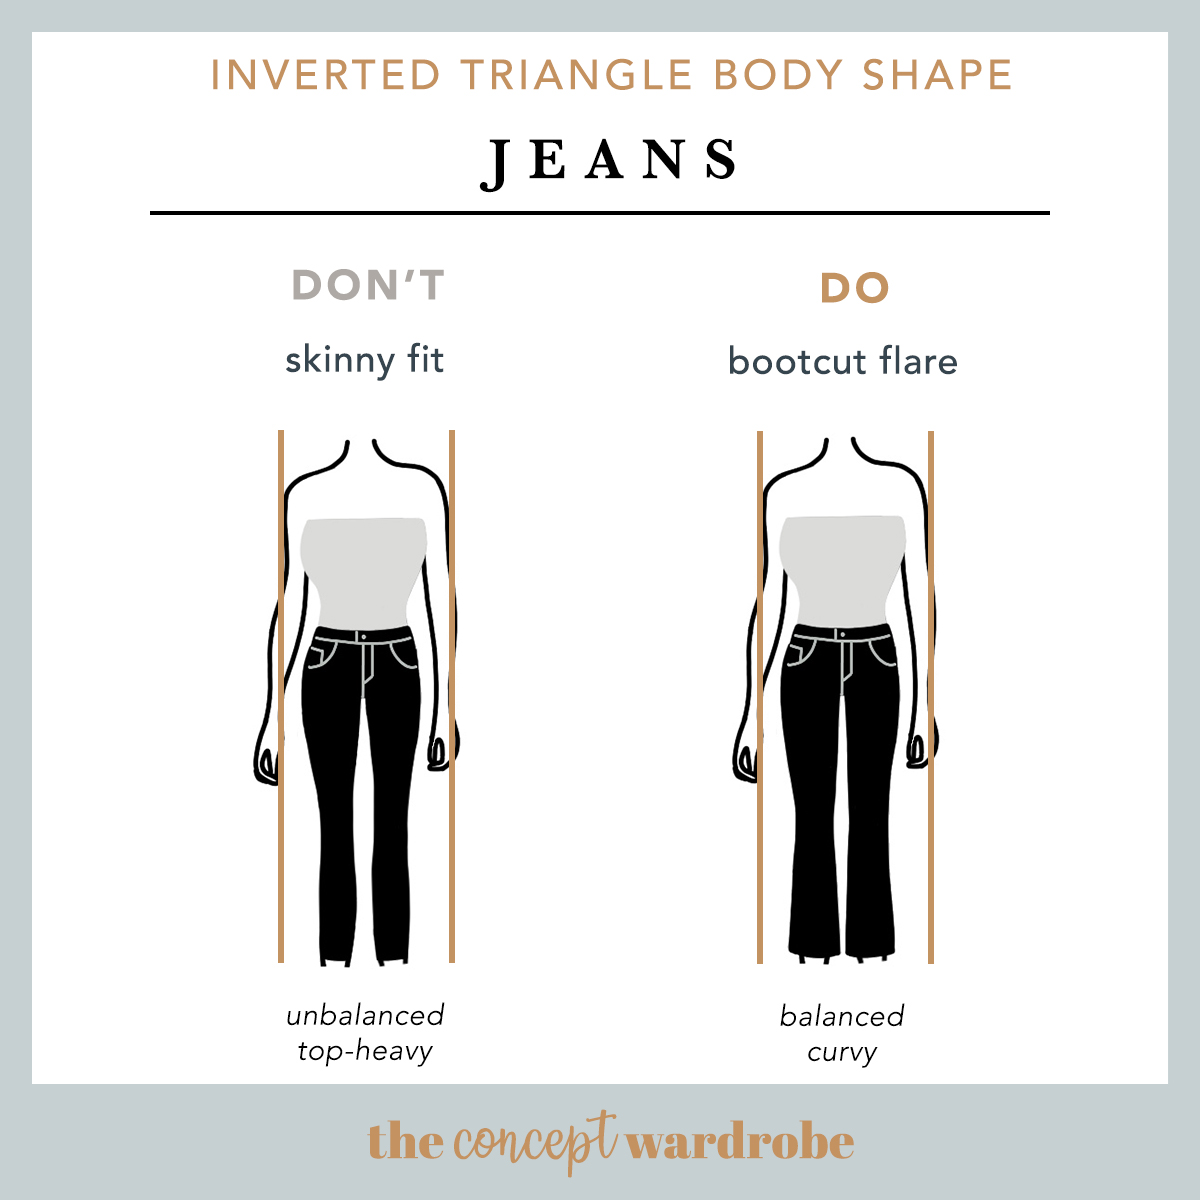 Inverted Triangle Body Shape Jeans Do's and Don'ts - the concept wardrobe